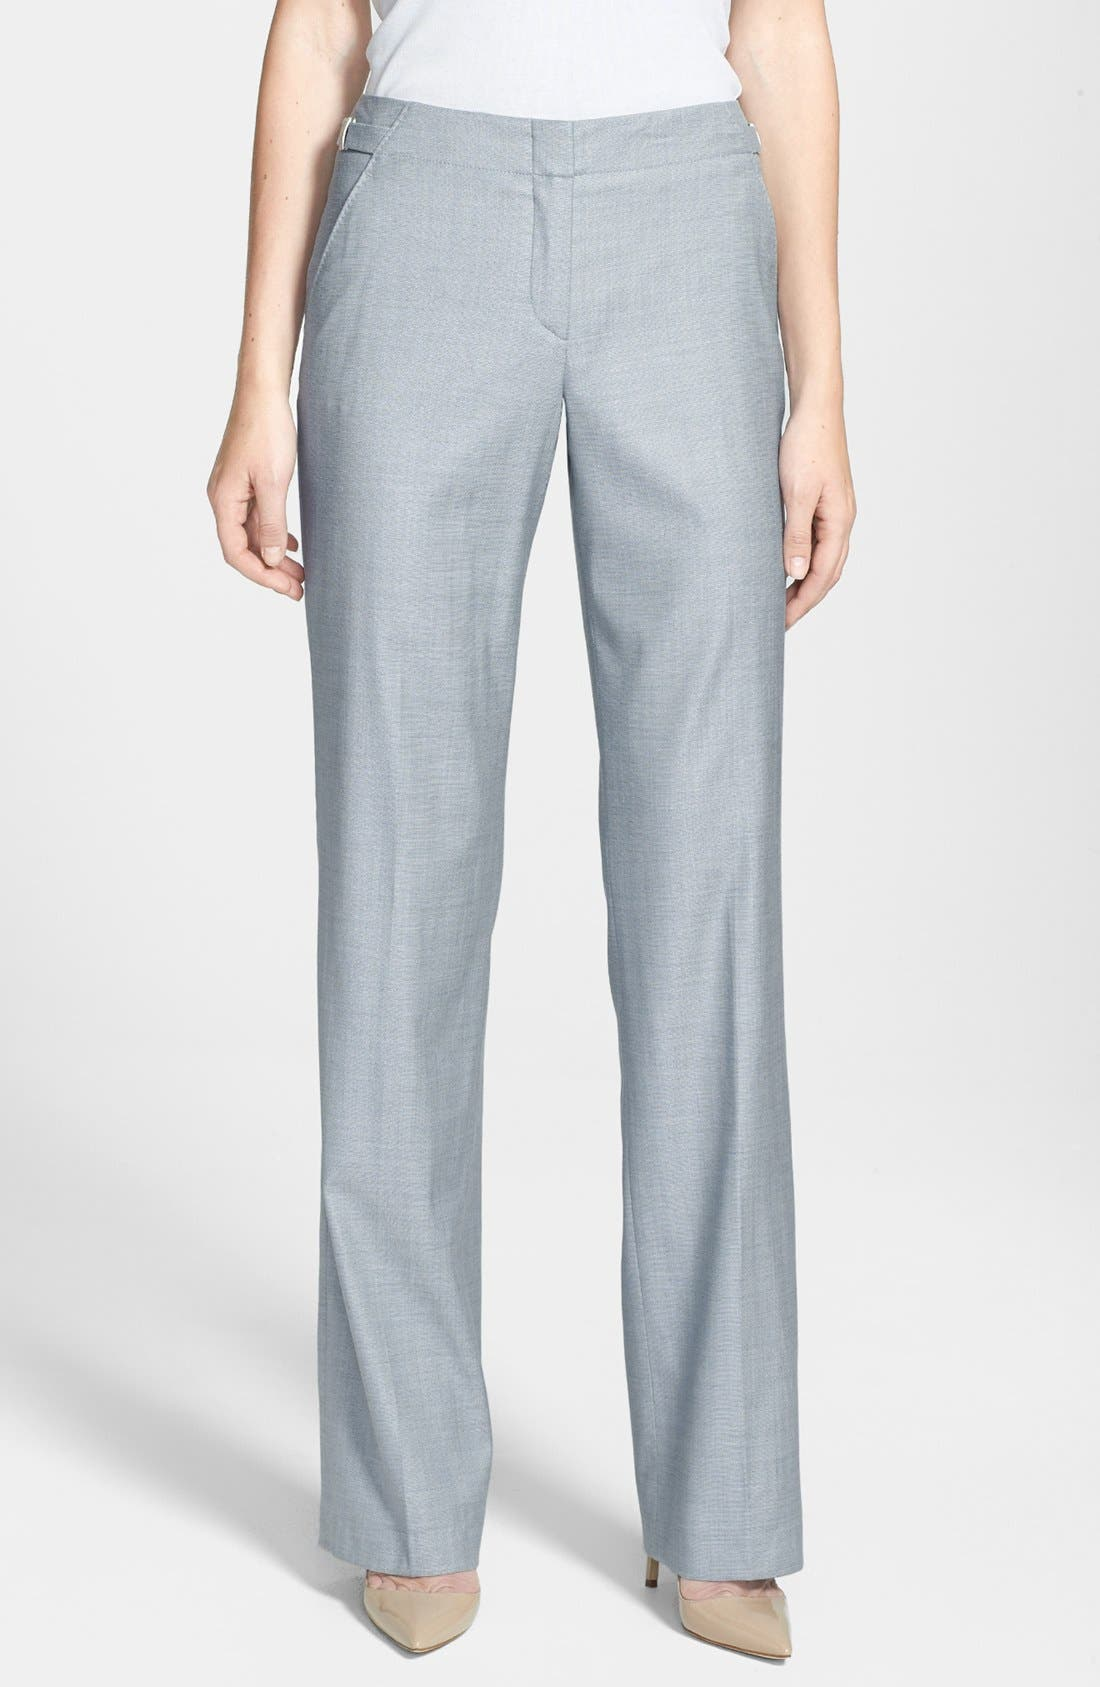 Alternate Image 1 Selected - BOSS HUGO BOSS 'Tillina' Stretch Wool Blend Trousers